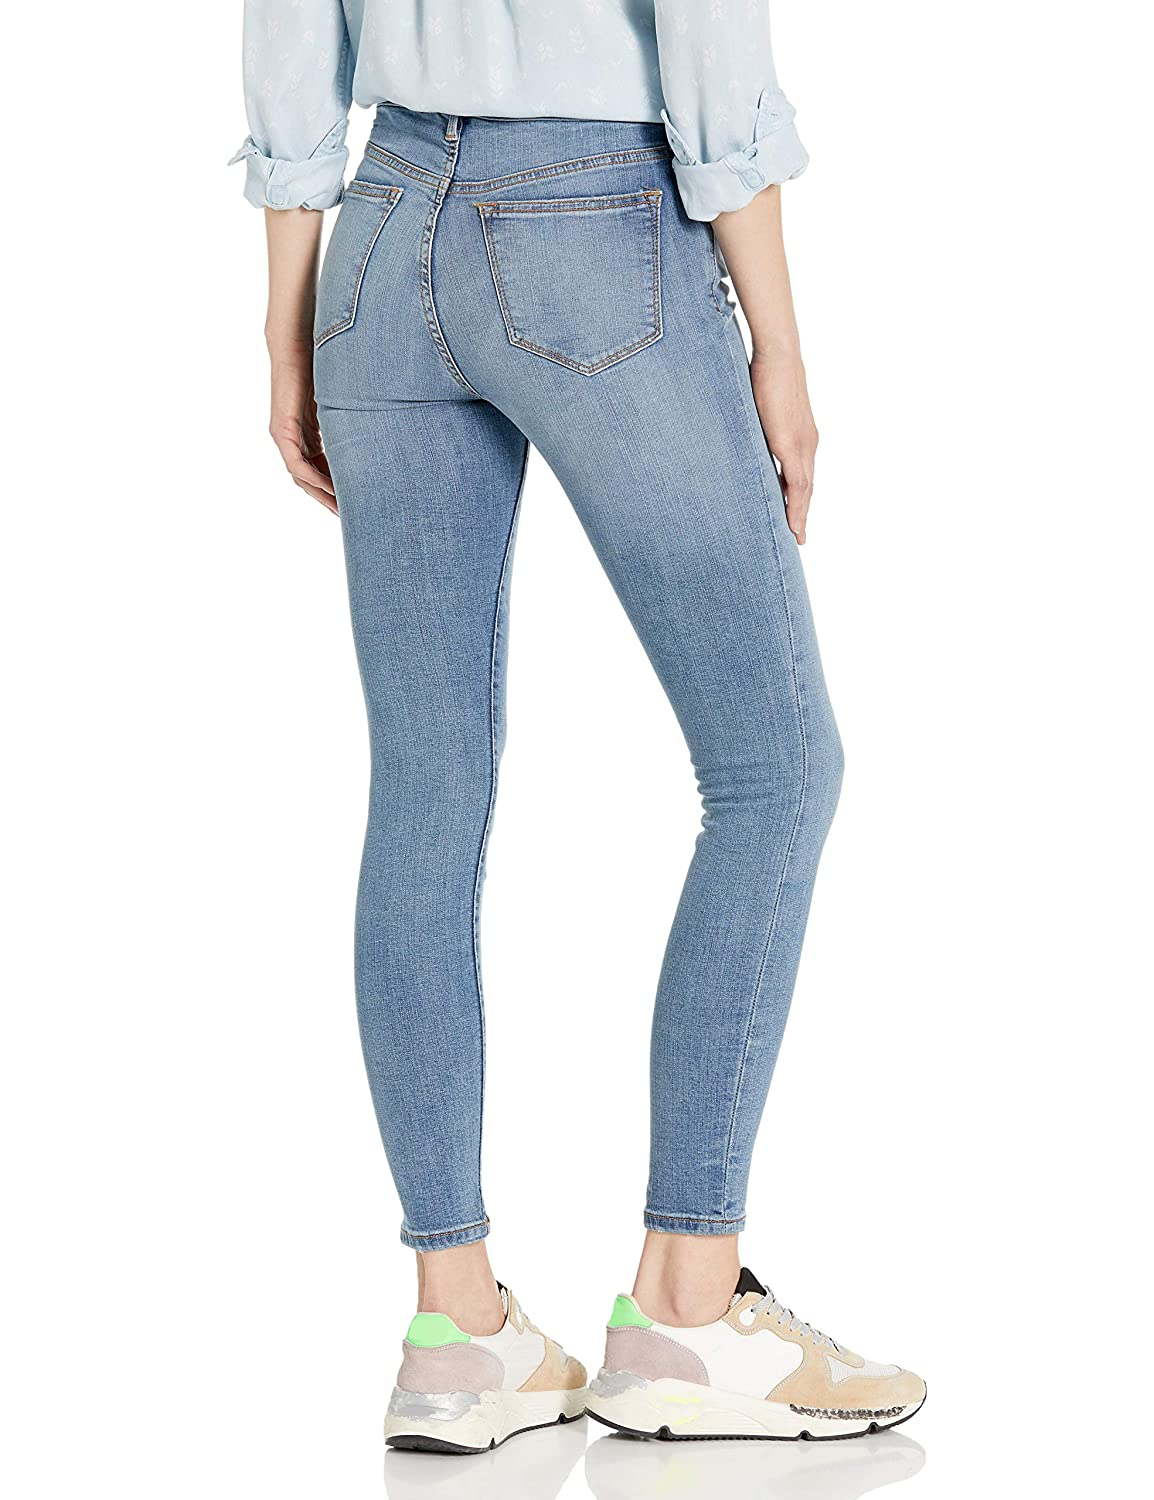 Goodthreads Mid-Rise Skinny Jeans Donna Marchio